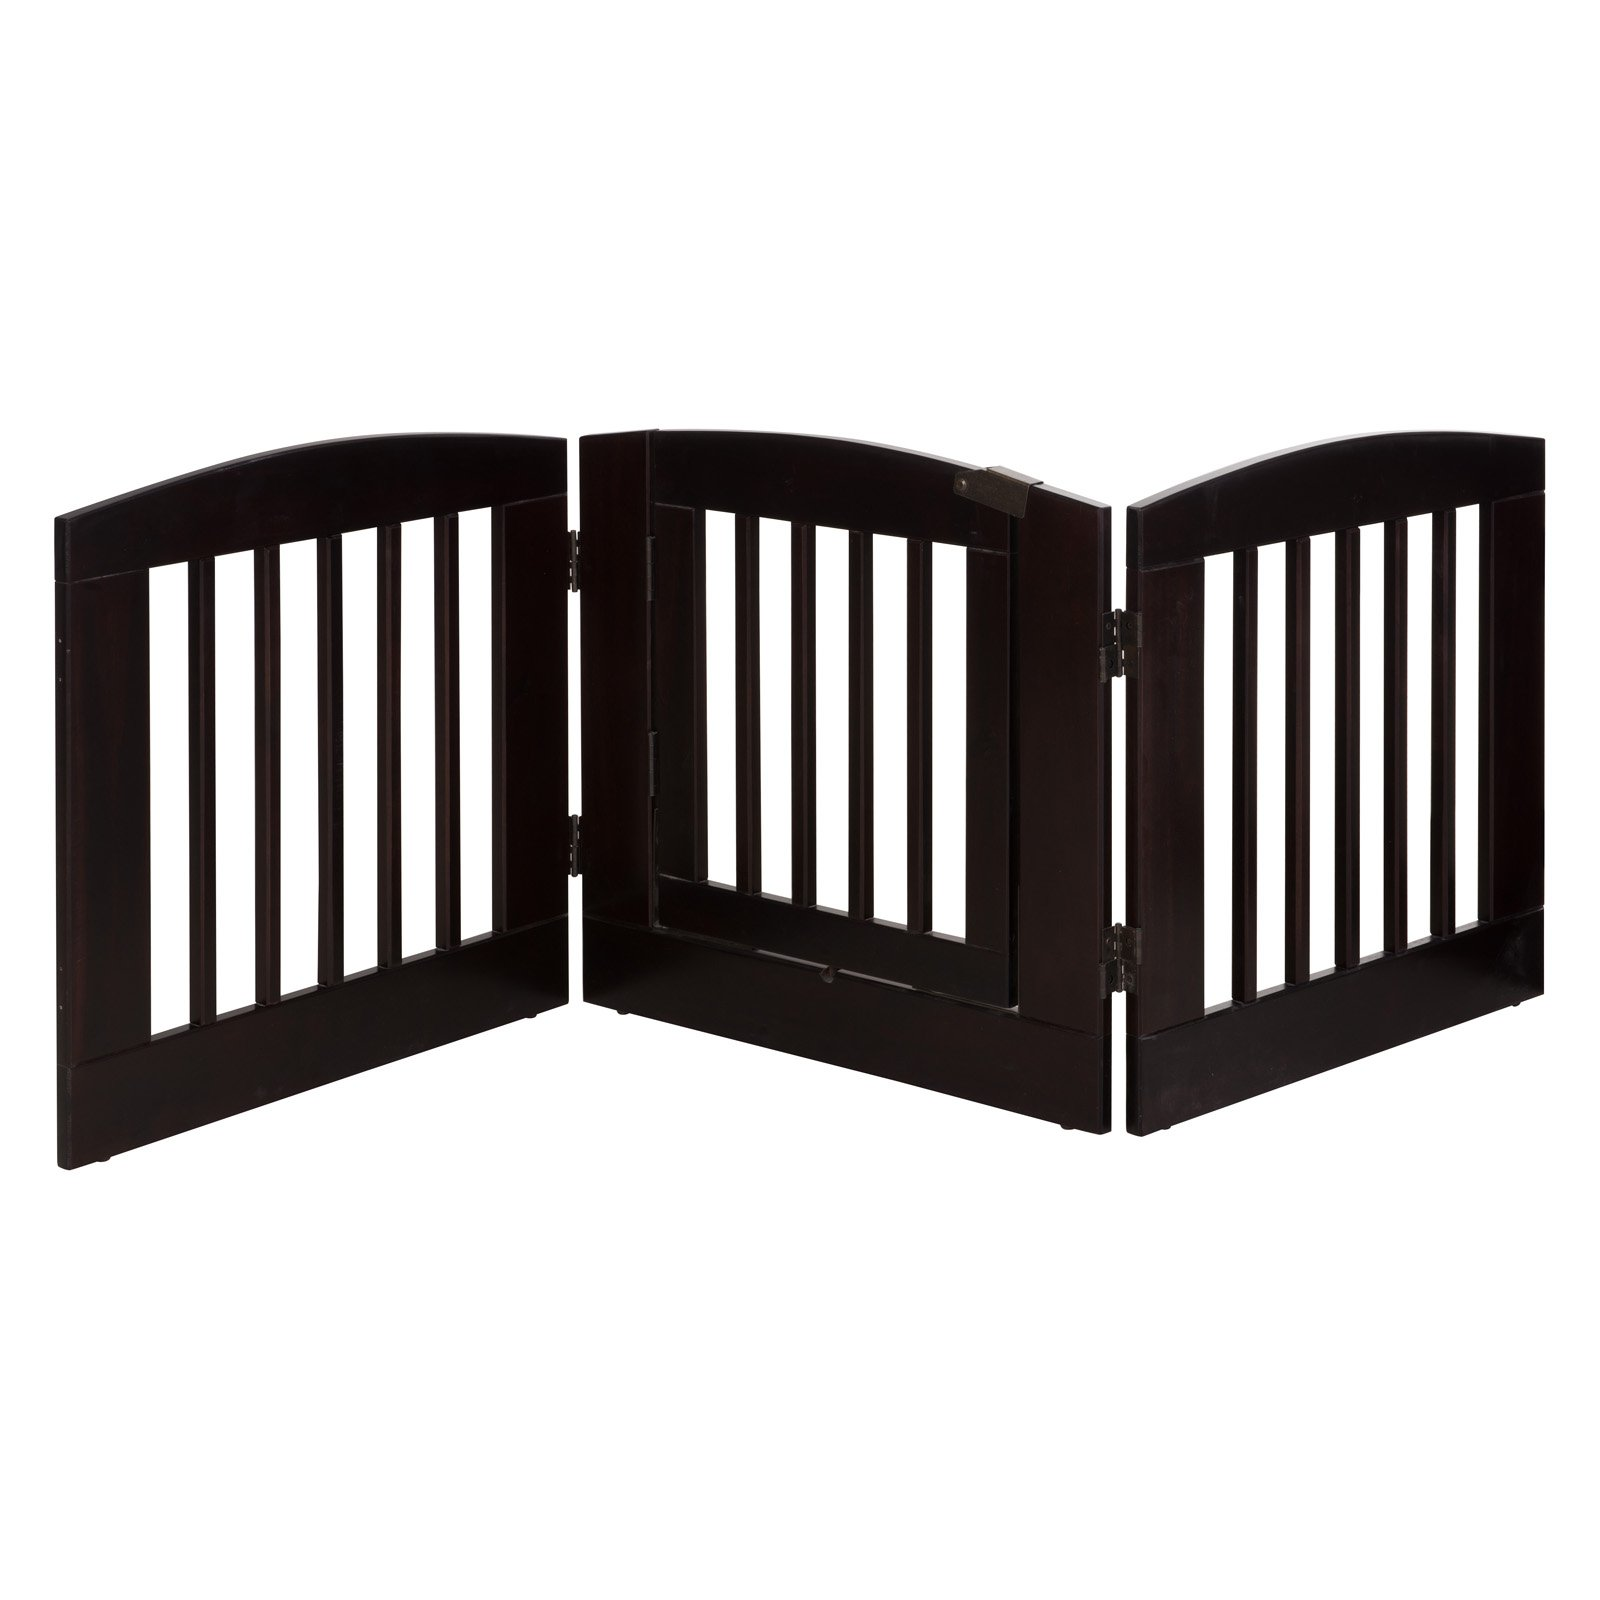 Ruffluv 3 Panel Expansion Pet Gate with Door